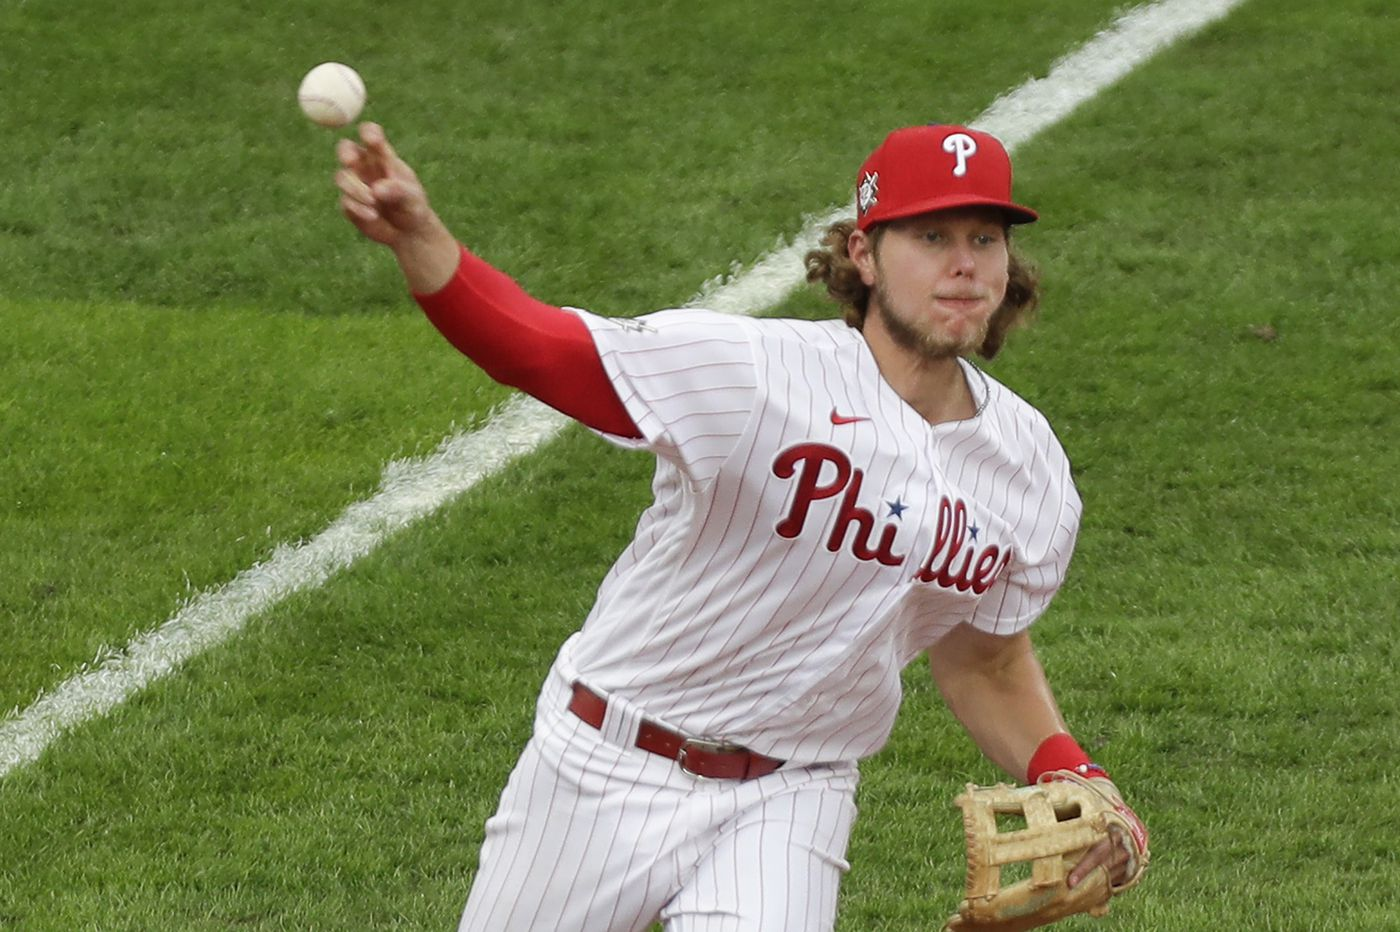 Phillies third baseman Alec Bohm nominated for NL rookie of the year award